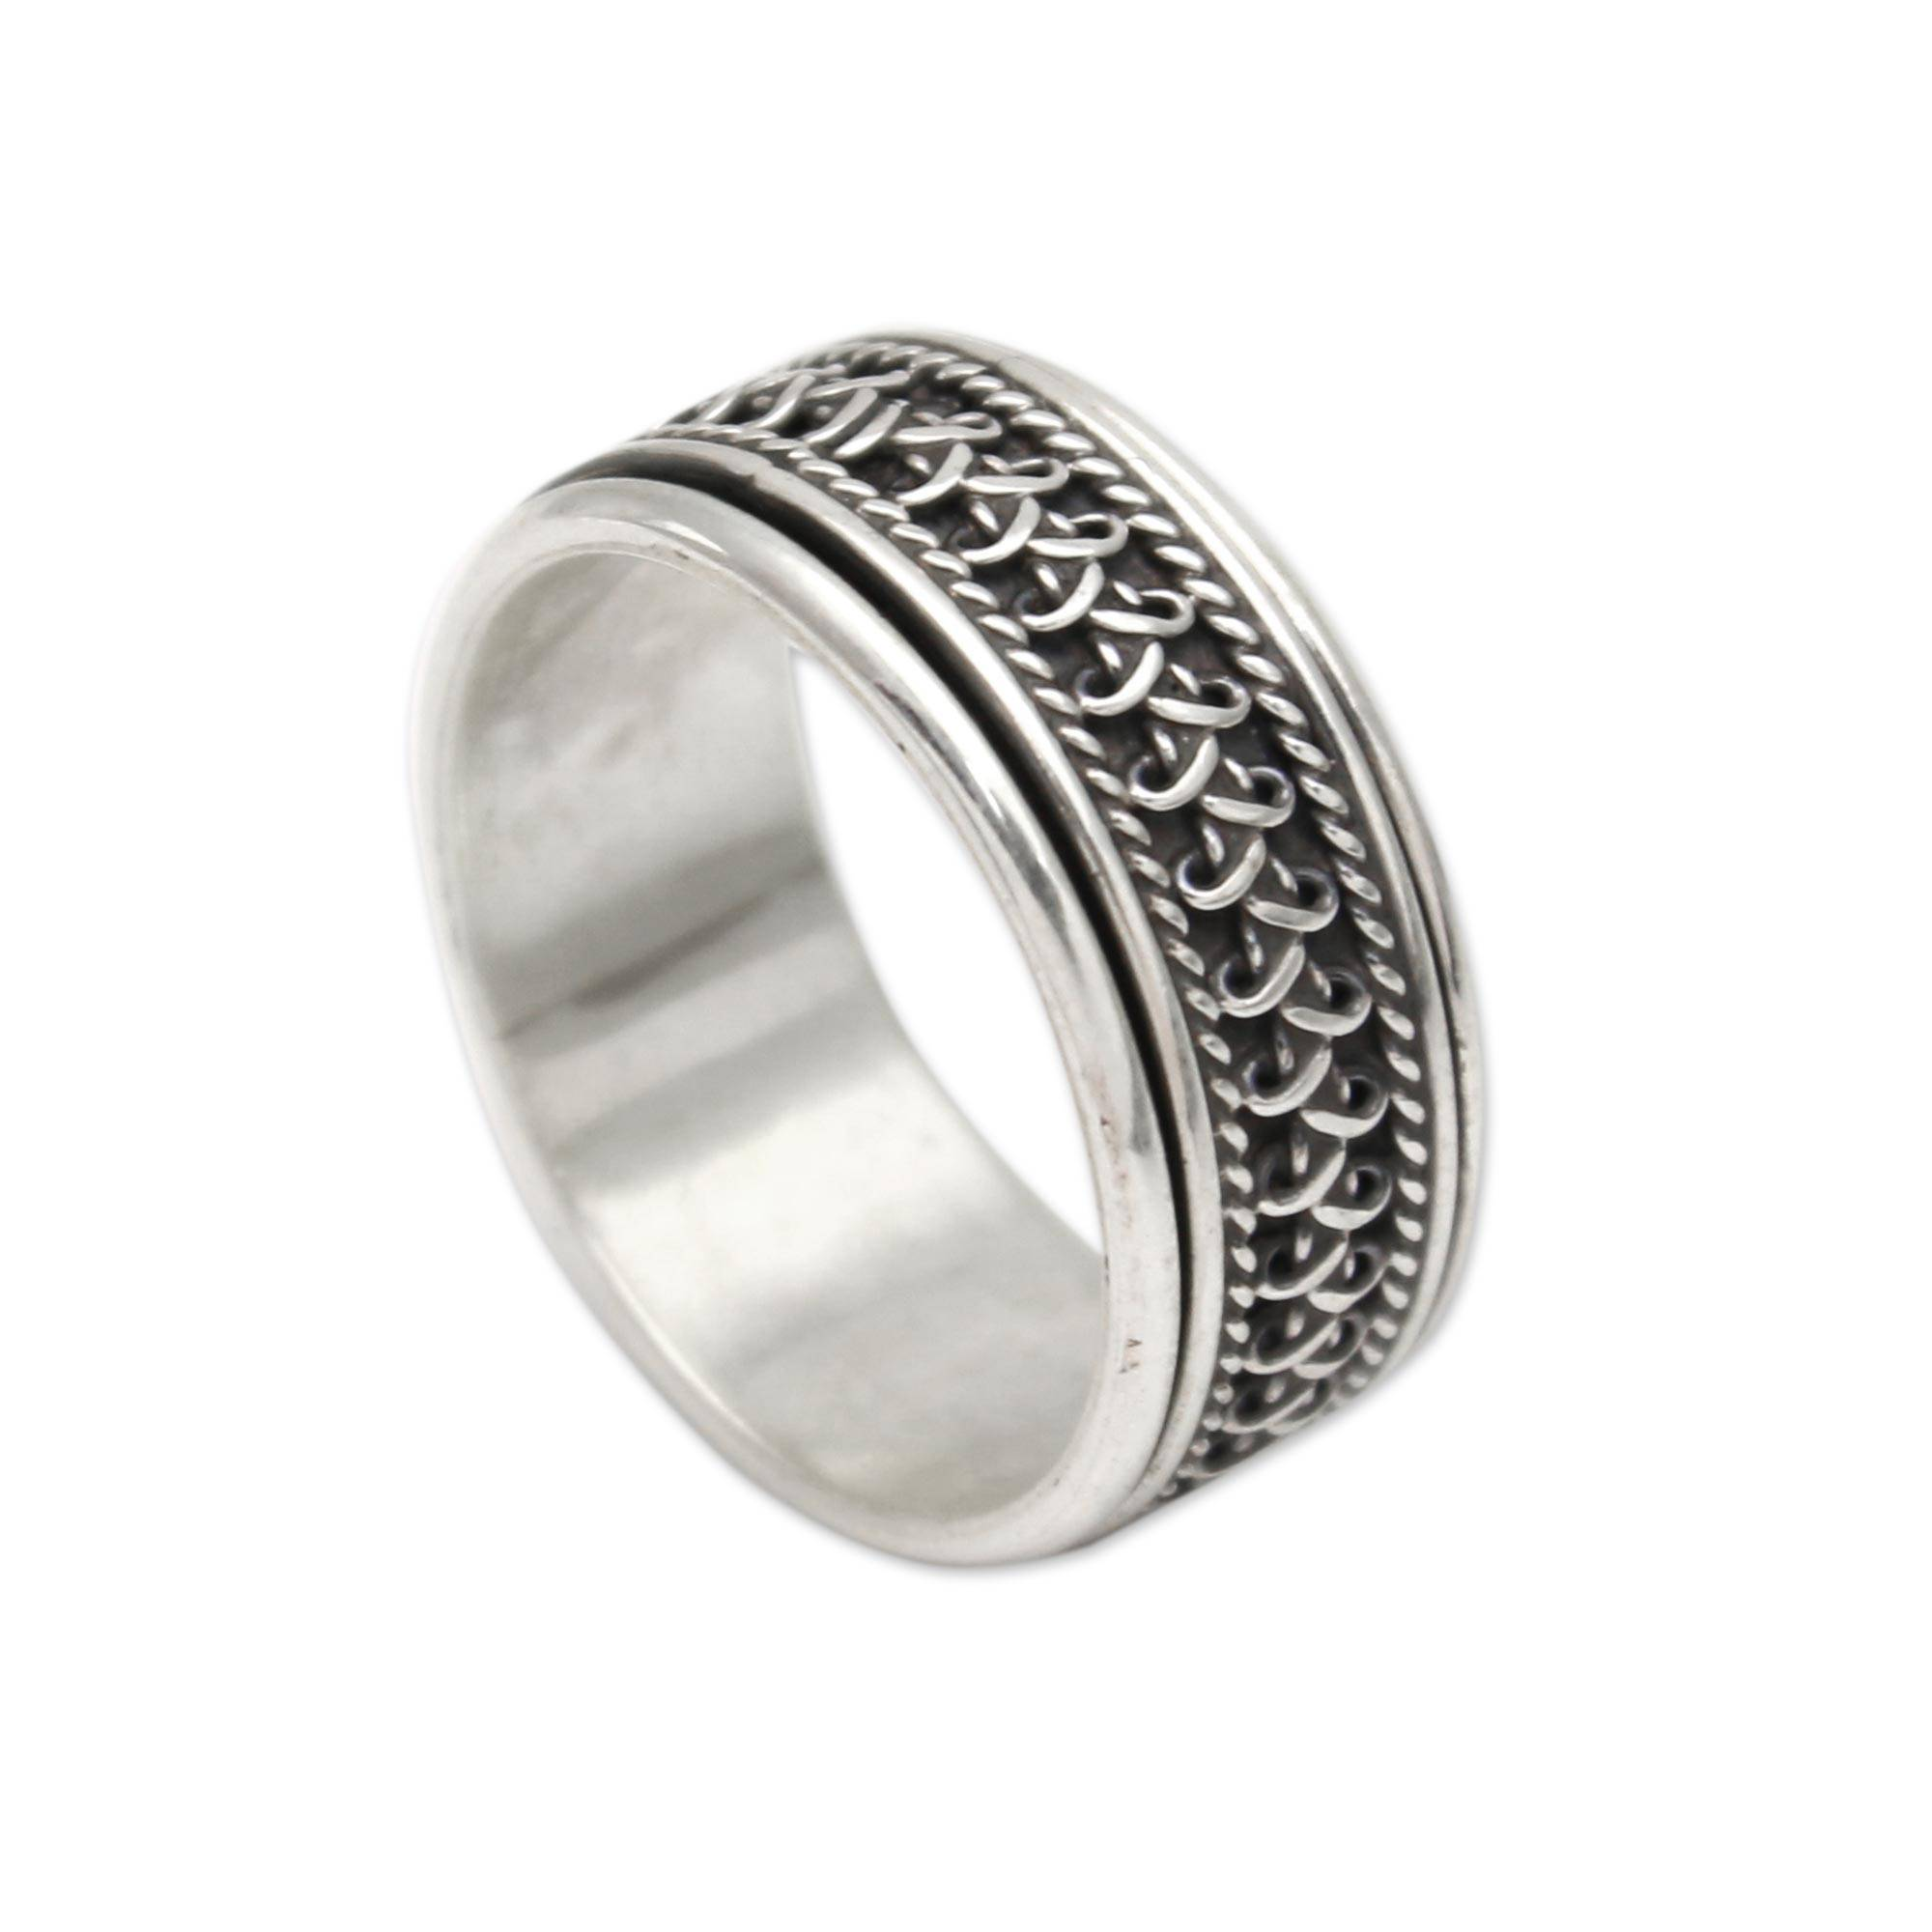 Hand Made Sterling Silver Spinner Ring from Indonesia Dragon